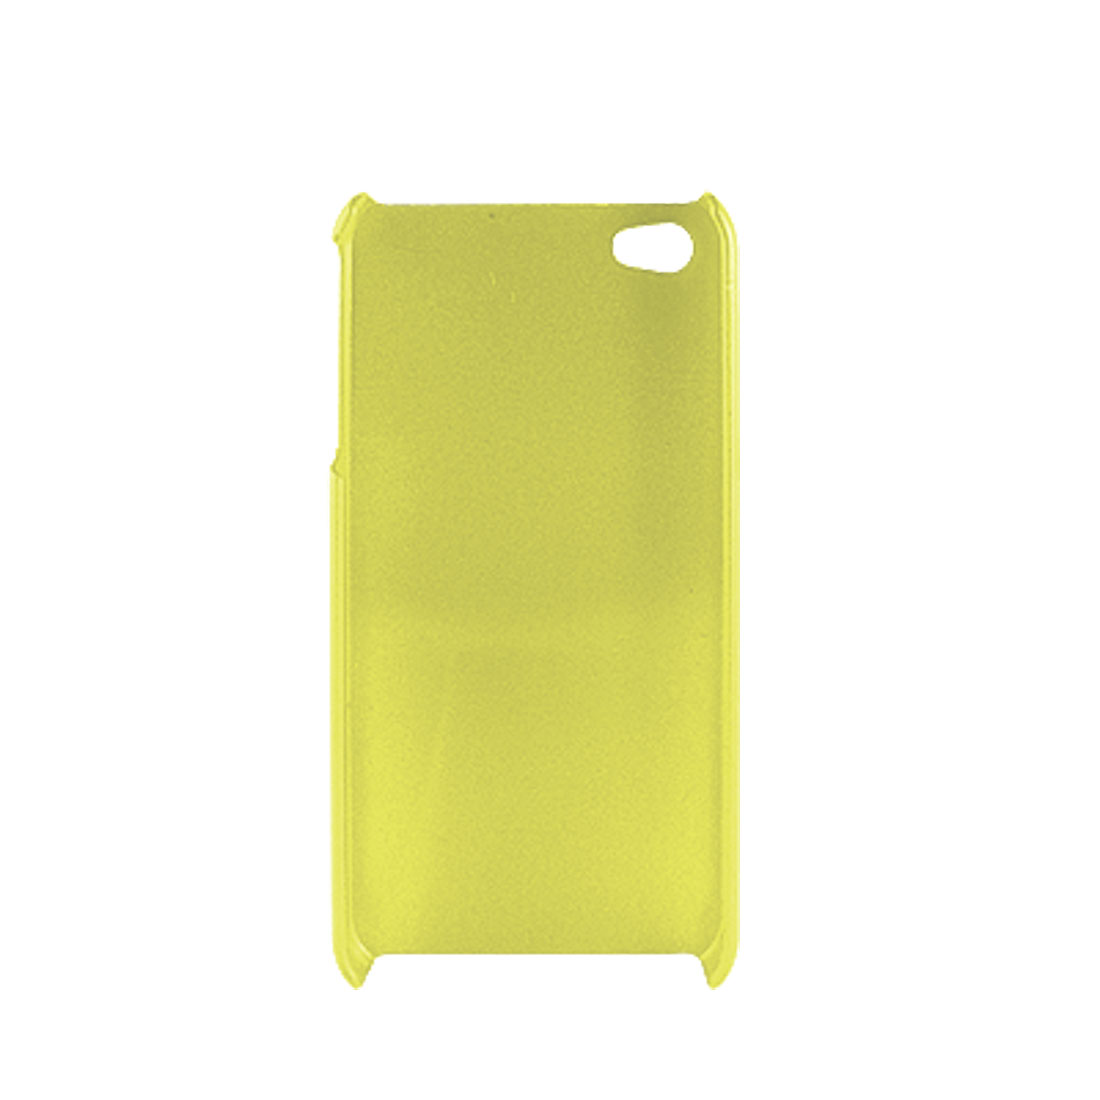 Clear Yellow Hard Plastic Phone Cover Case for iPhone 4 4G